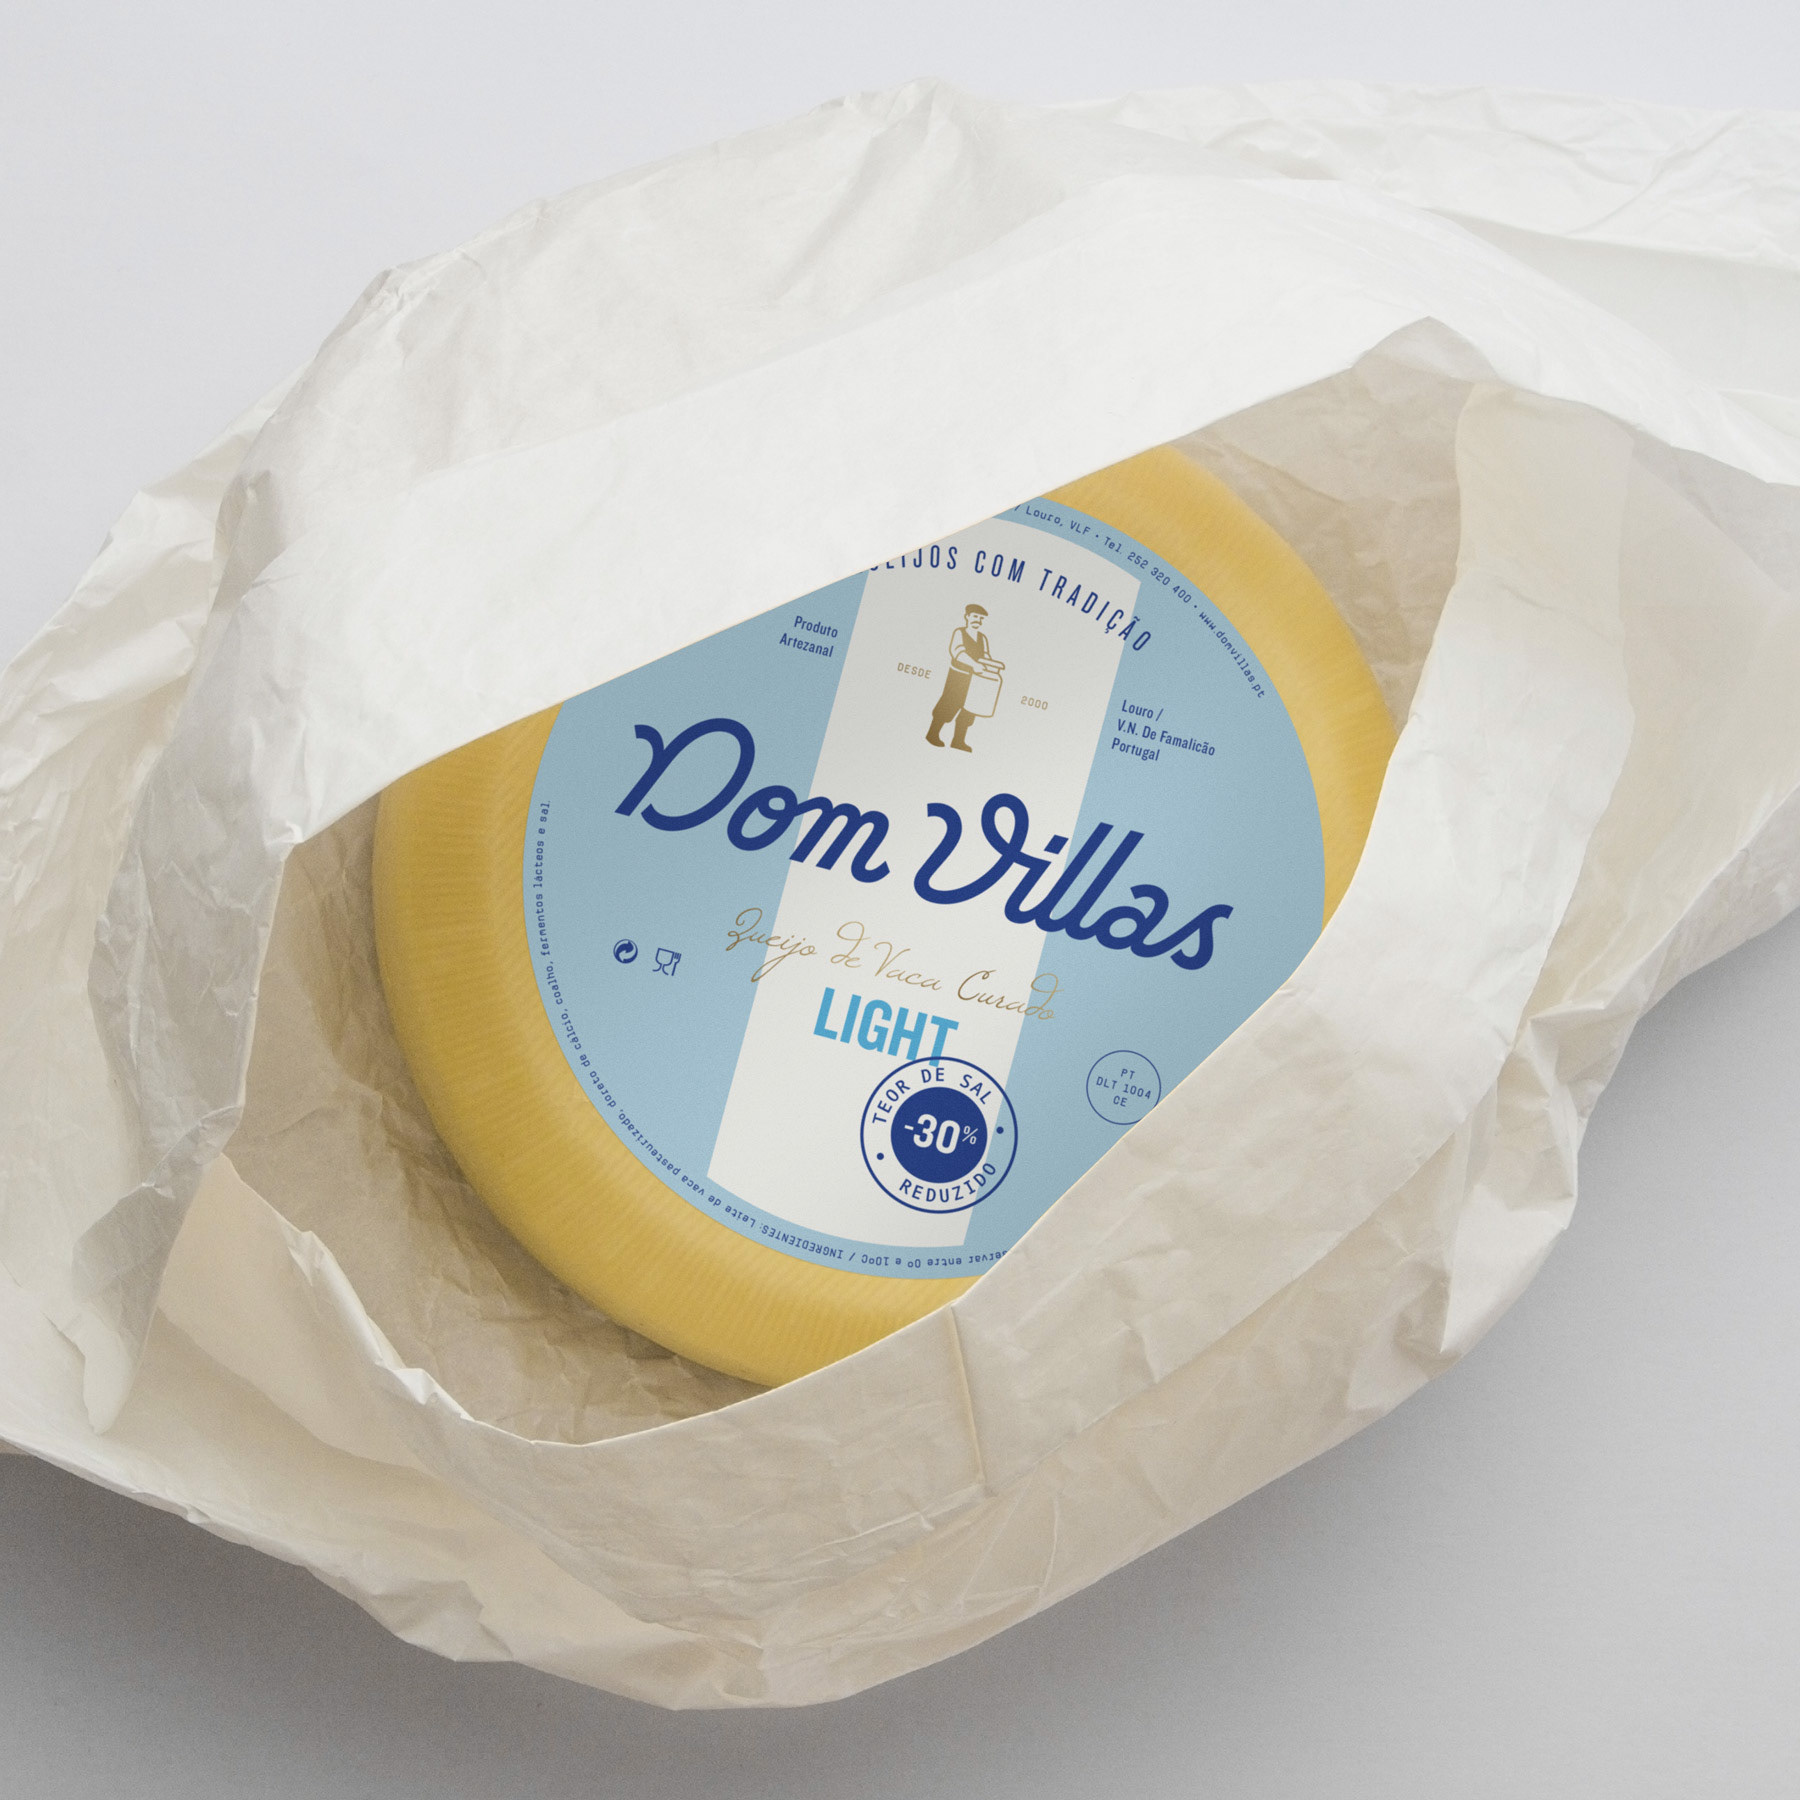 Cheeses+Dom+Villas+identity+and+packaging+by+www.gen-1.jpg